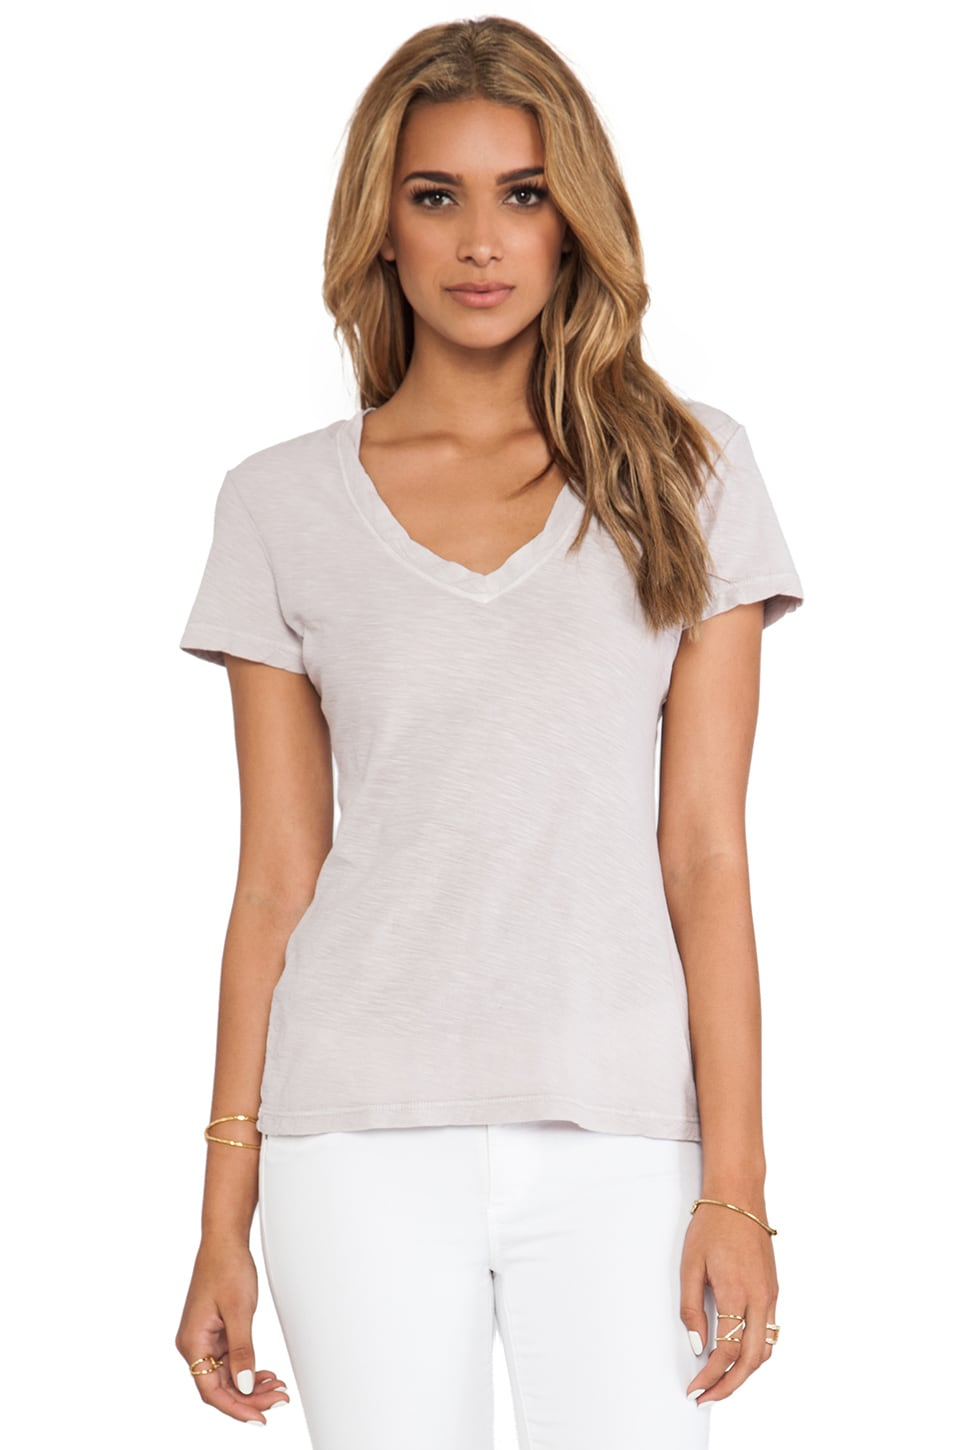 James Perse Casual Tee in Halite